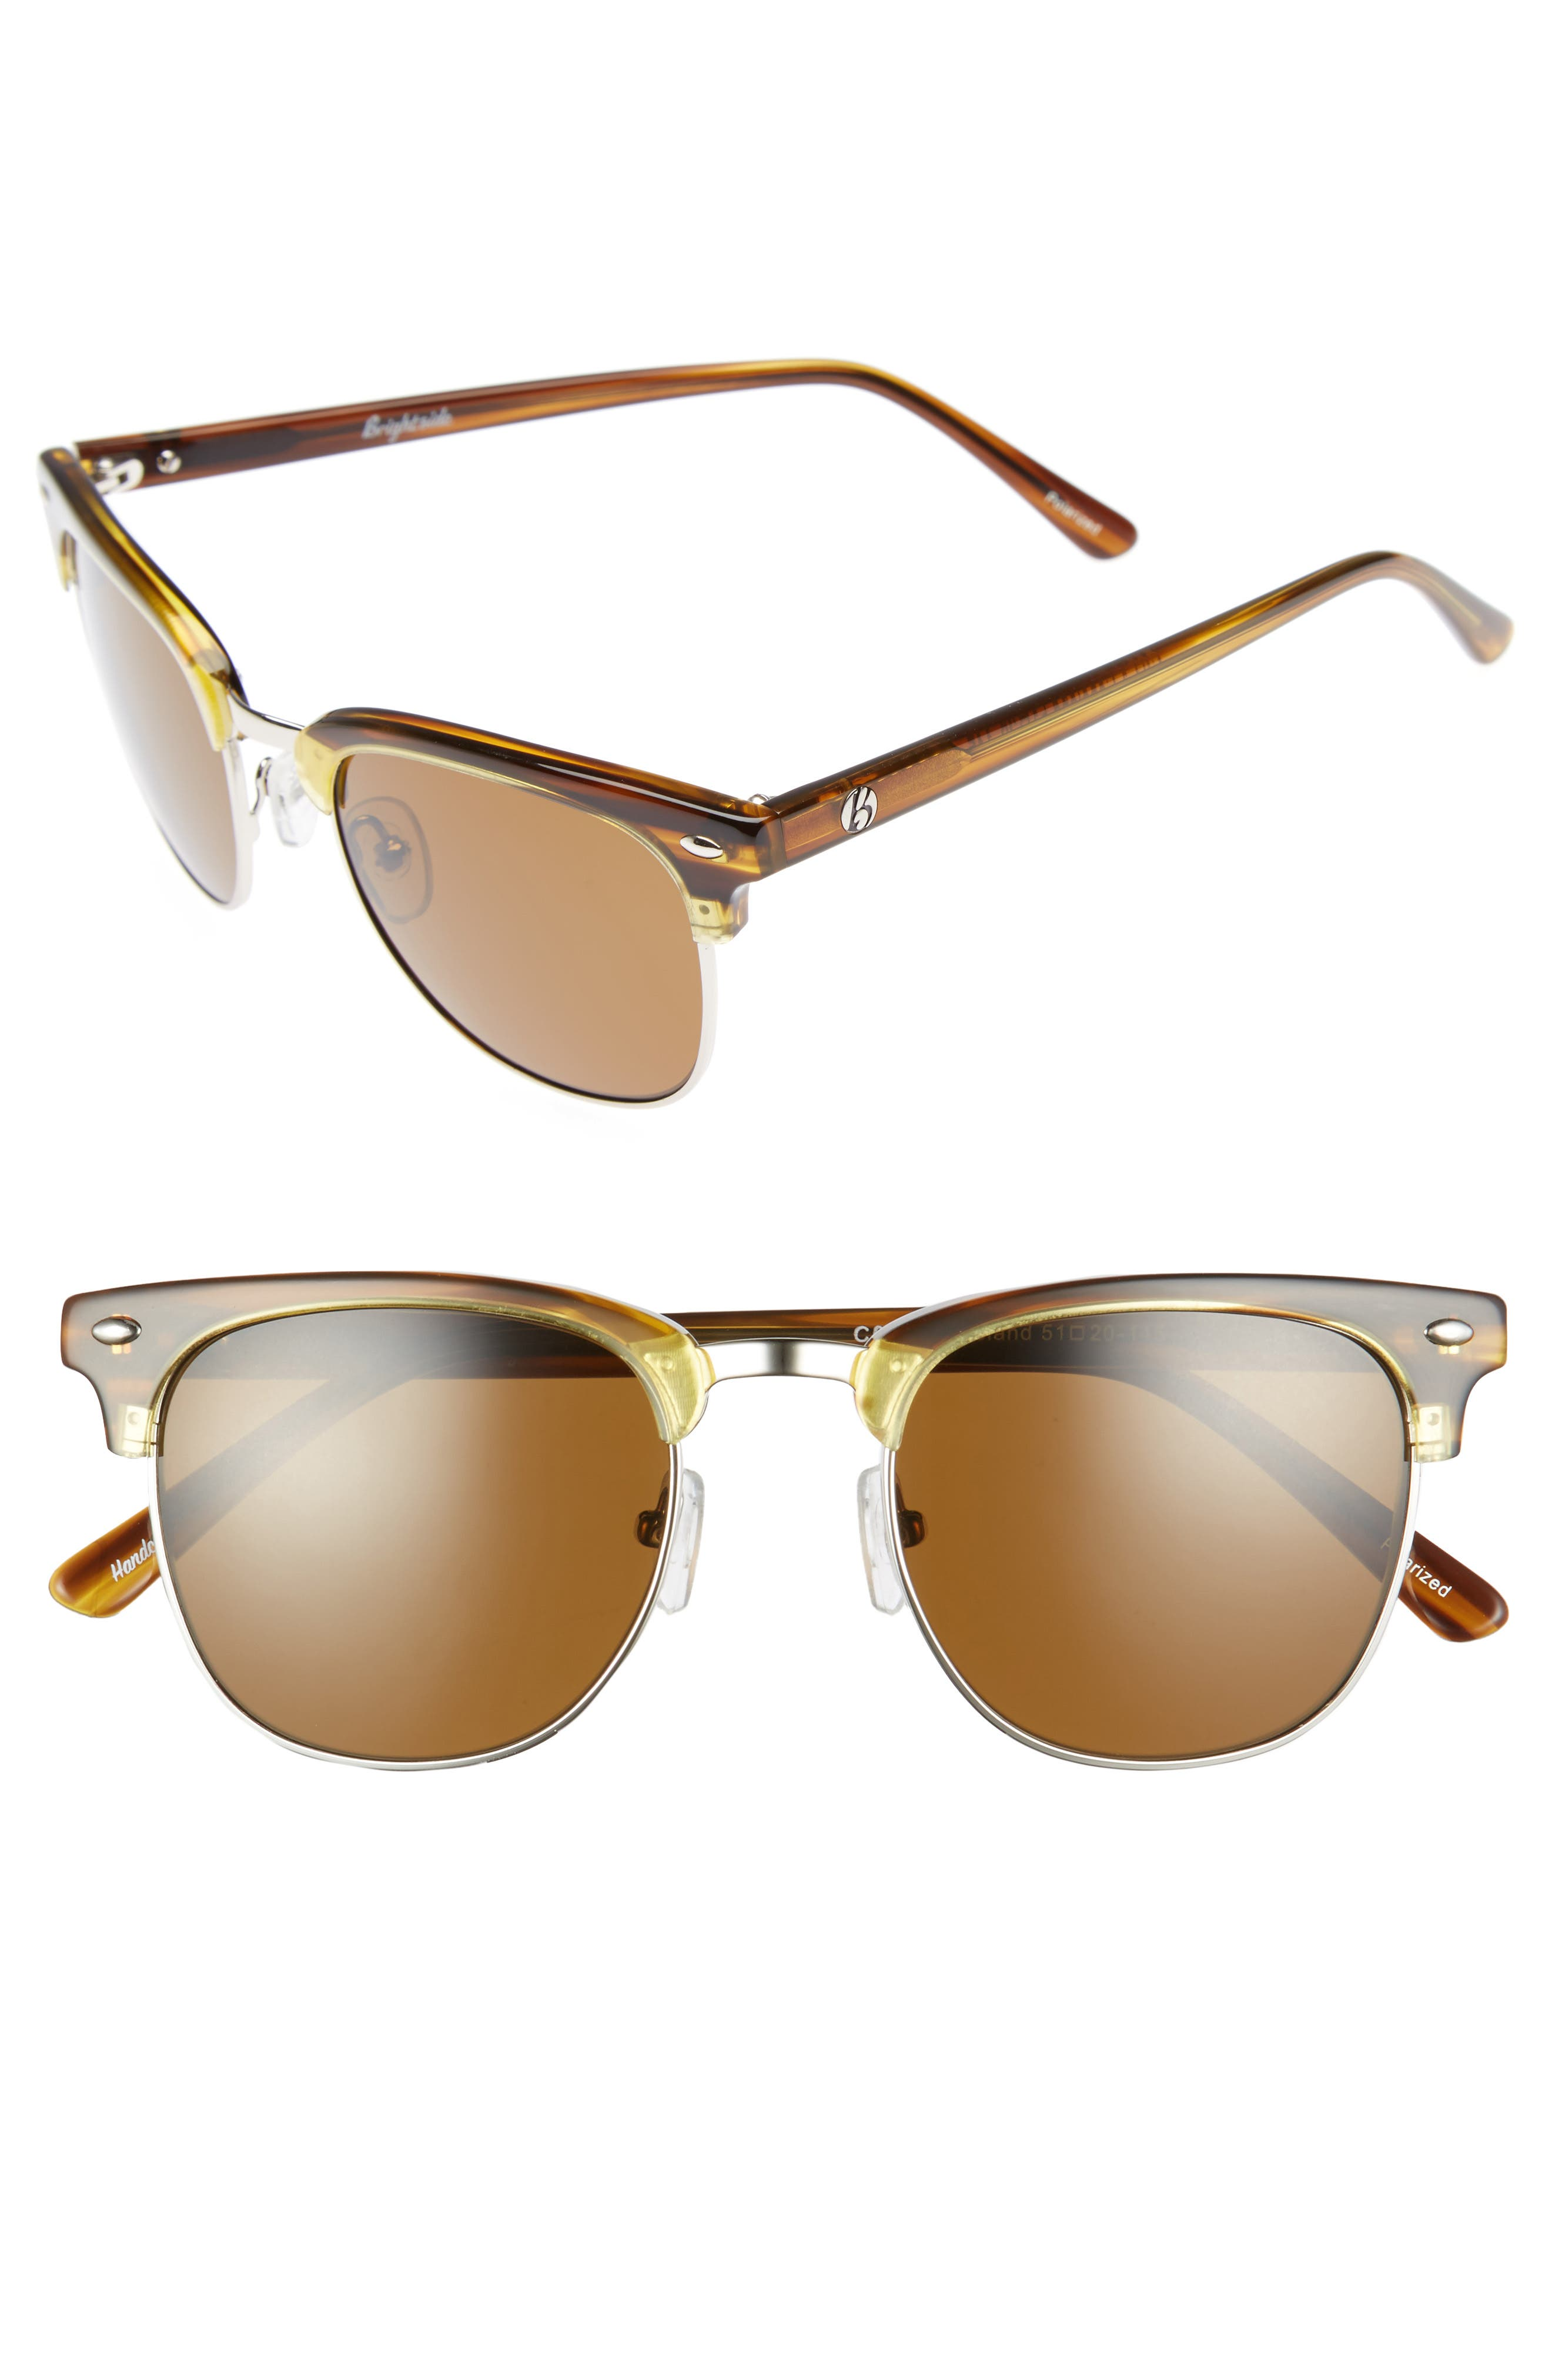 Copeland 51mm Polarized Sunglasses,                         Main,                         color, Amber/ Brown Polar